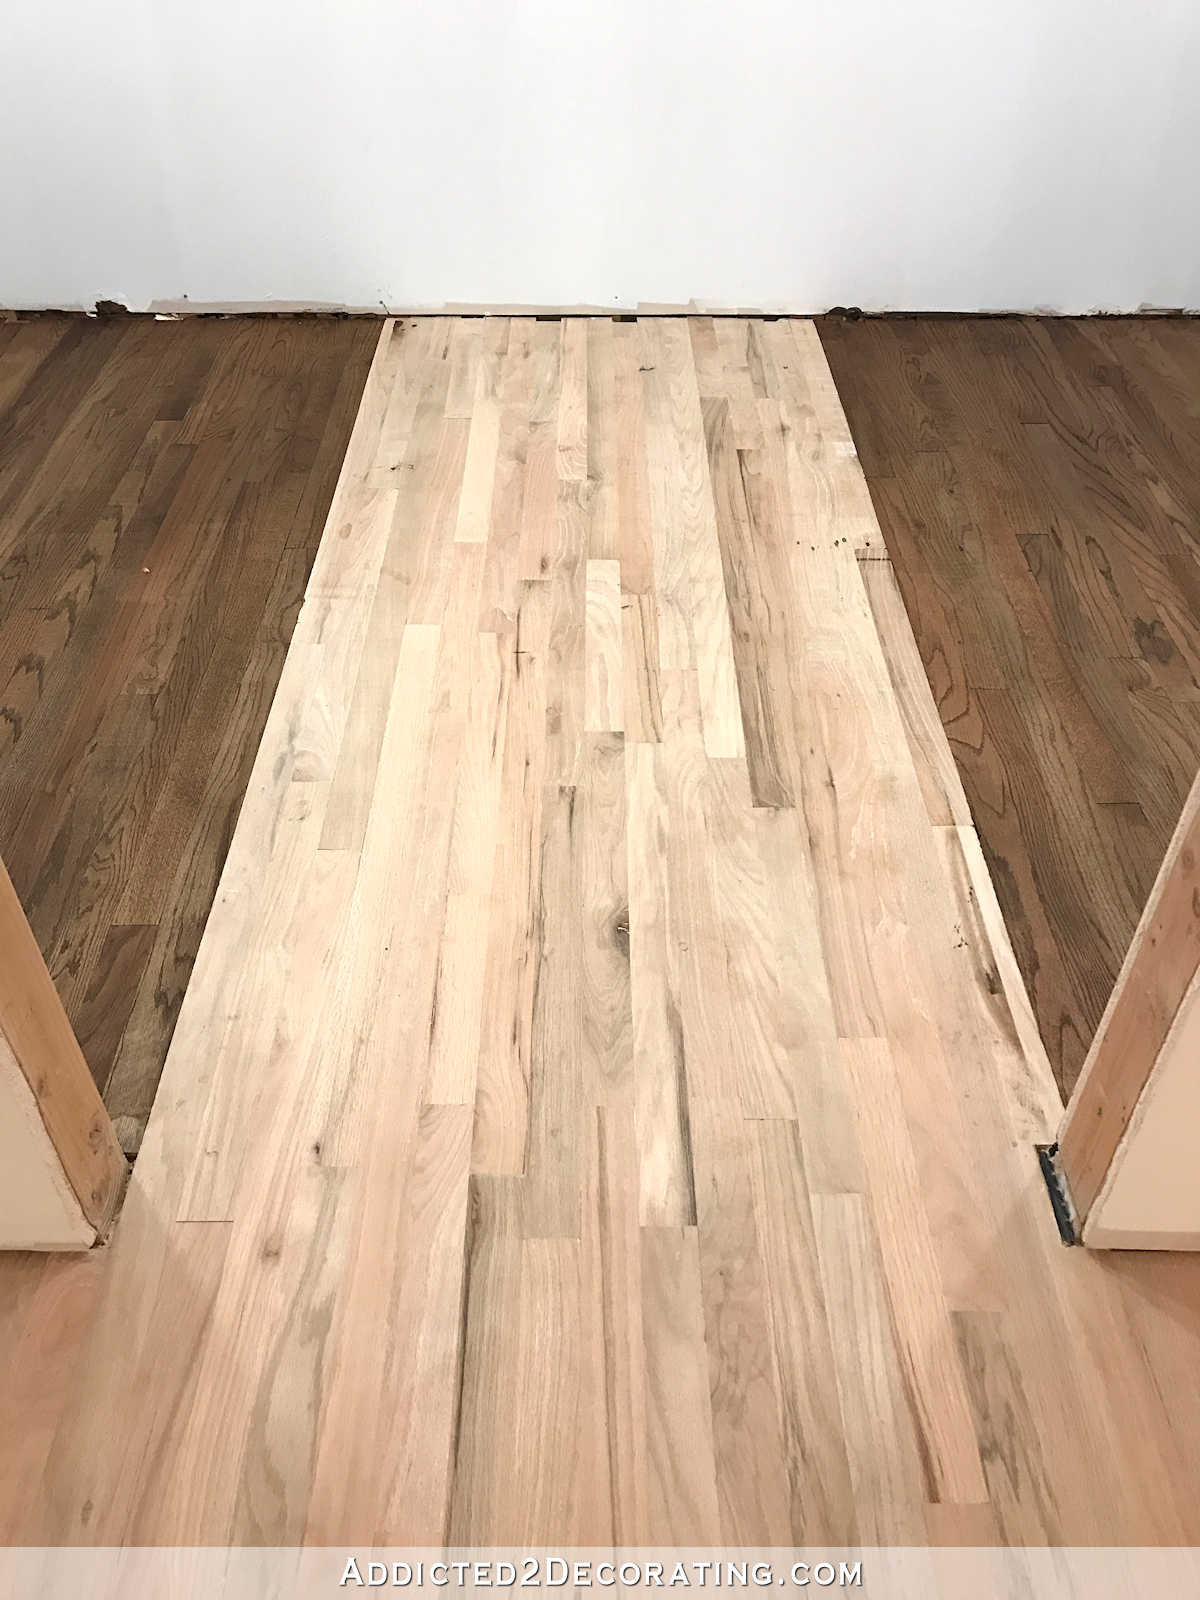 refinish hardwood floors without sanding products of adventures in staining my red oak hardwood floors products process within staining red oak hardwood floors 11 stain on left and right sides of the